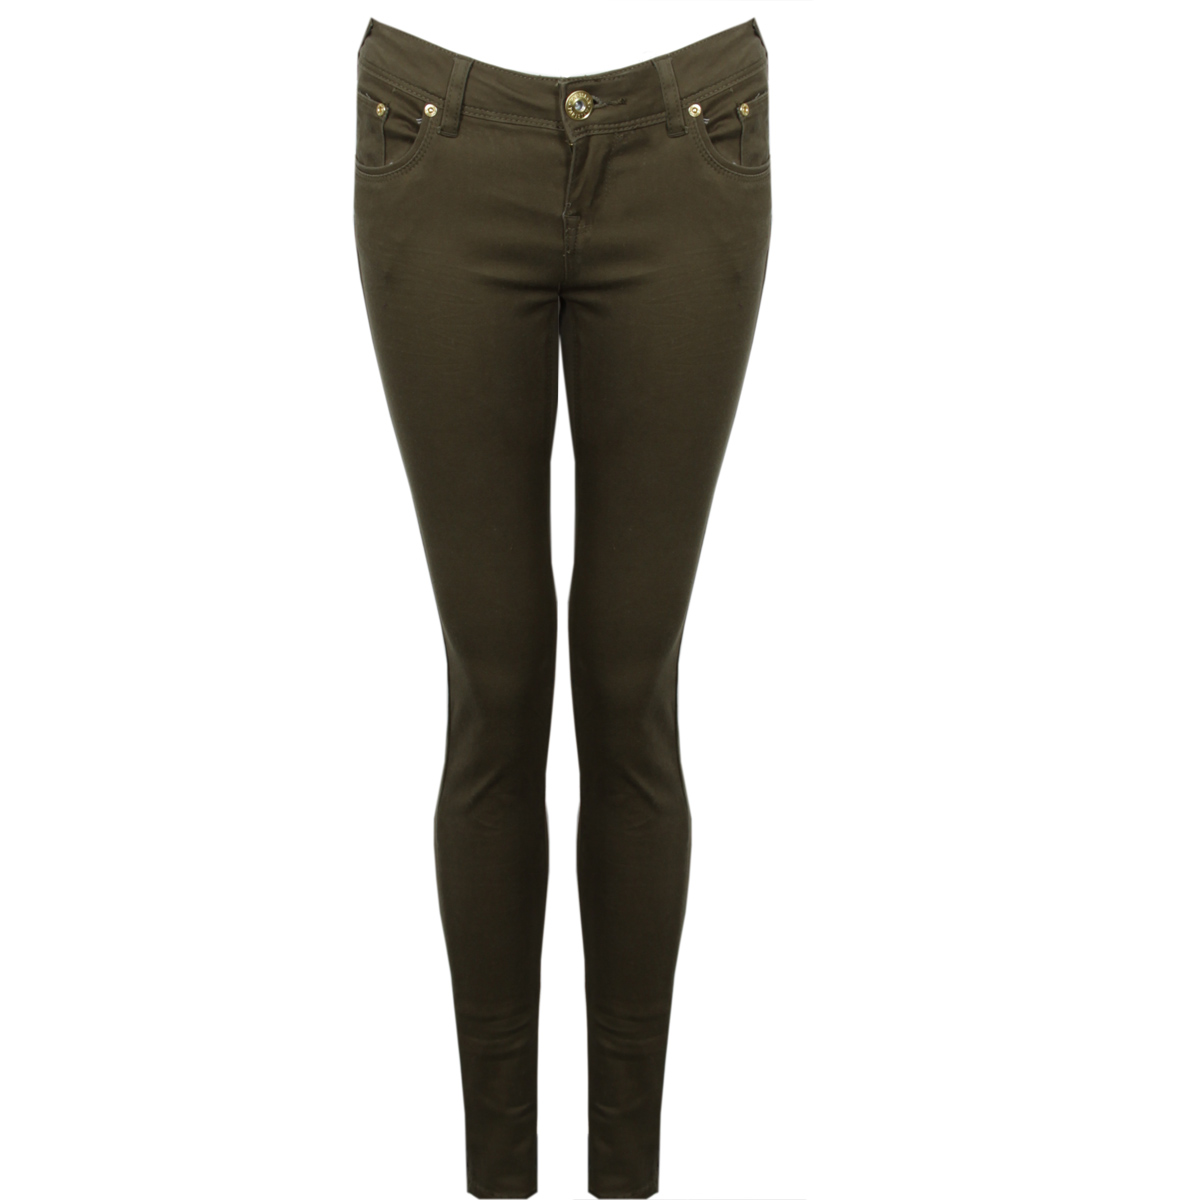 Find great deals on eBay for skinny jeans green. Shop with confidence.